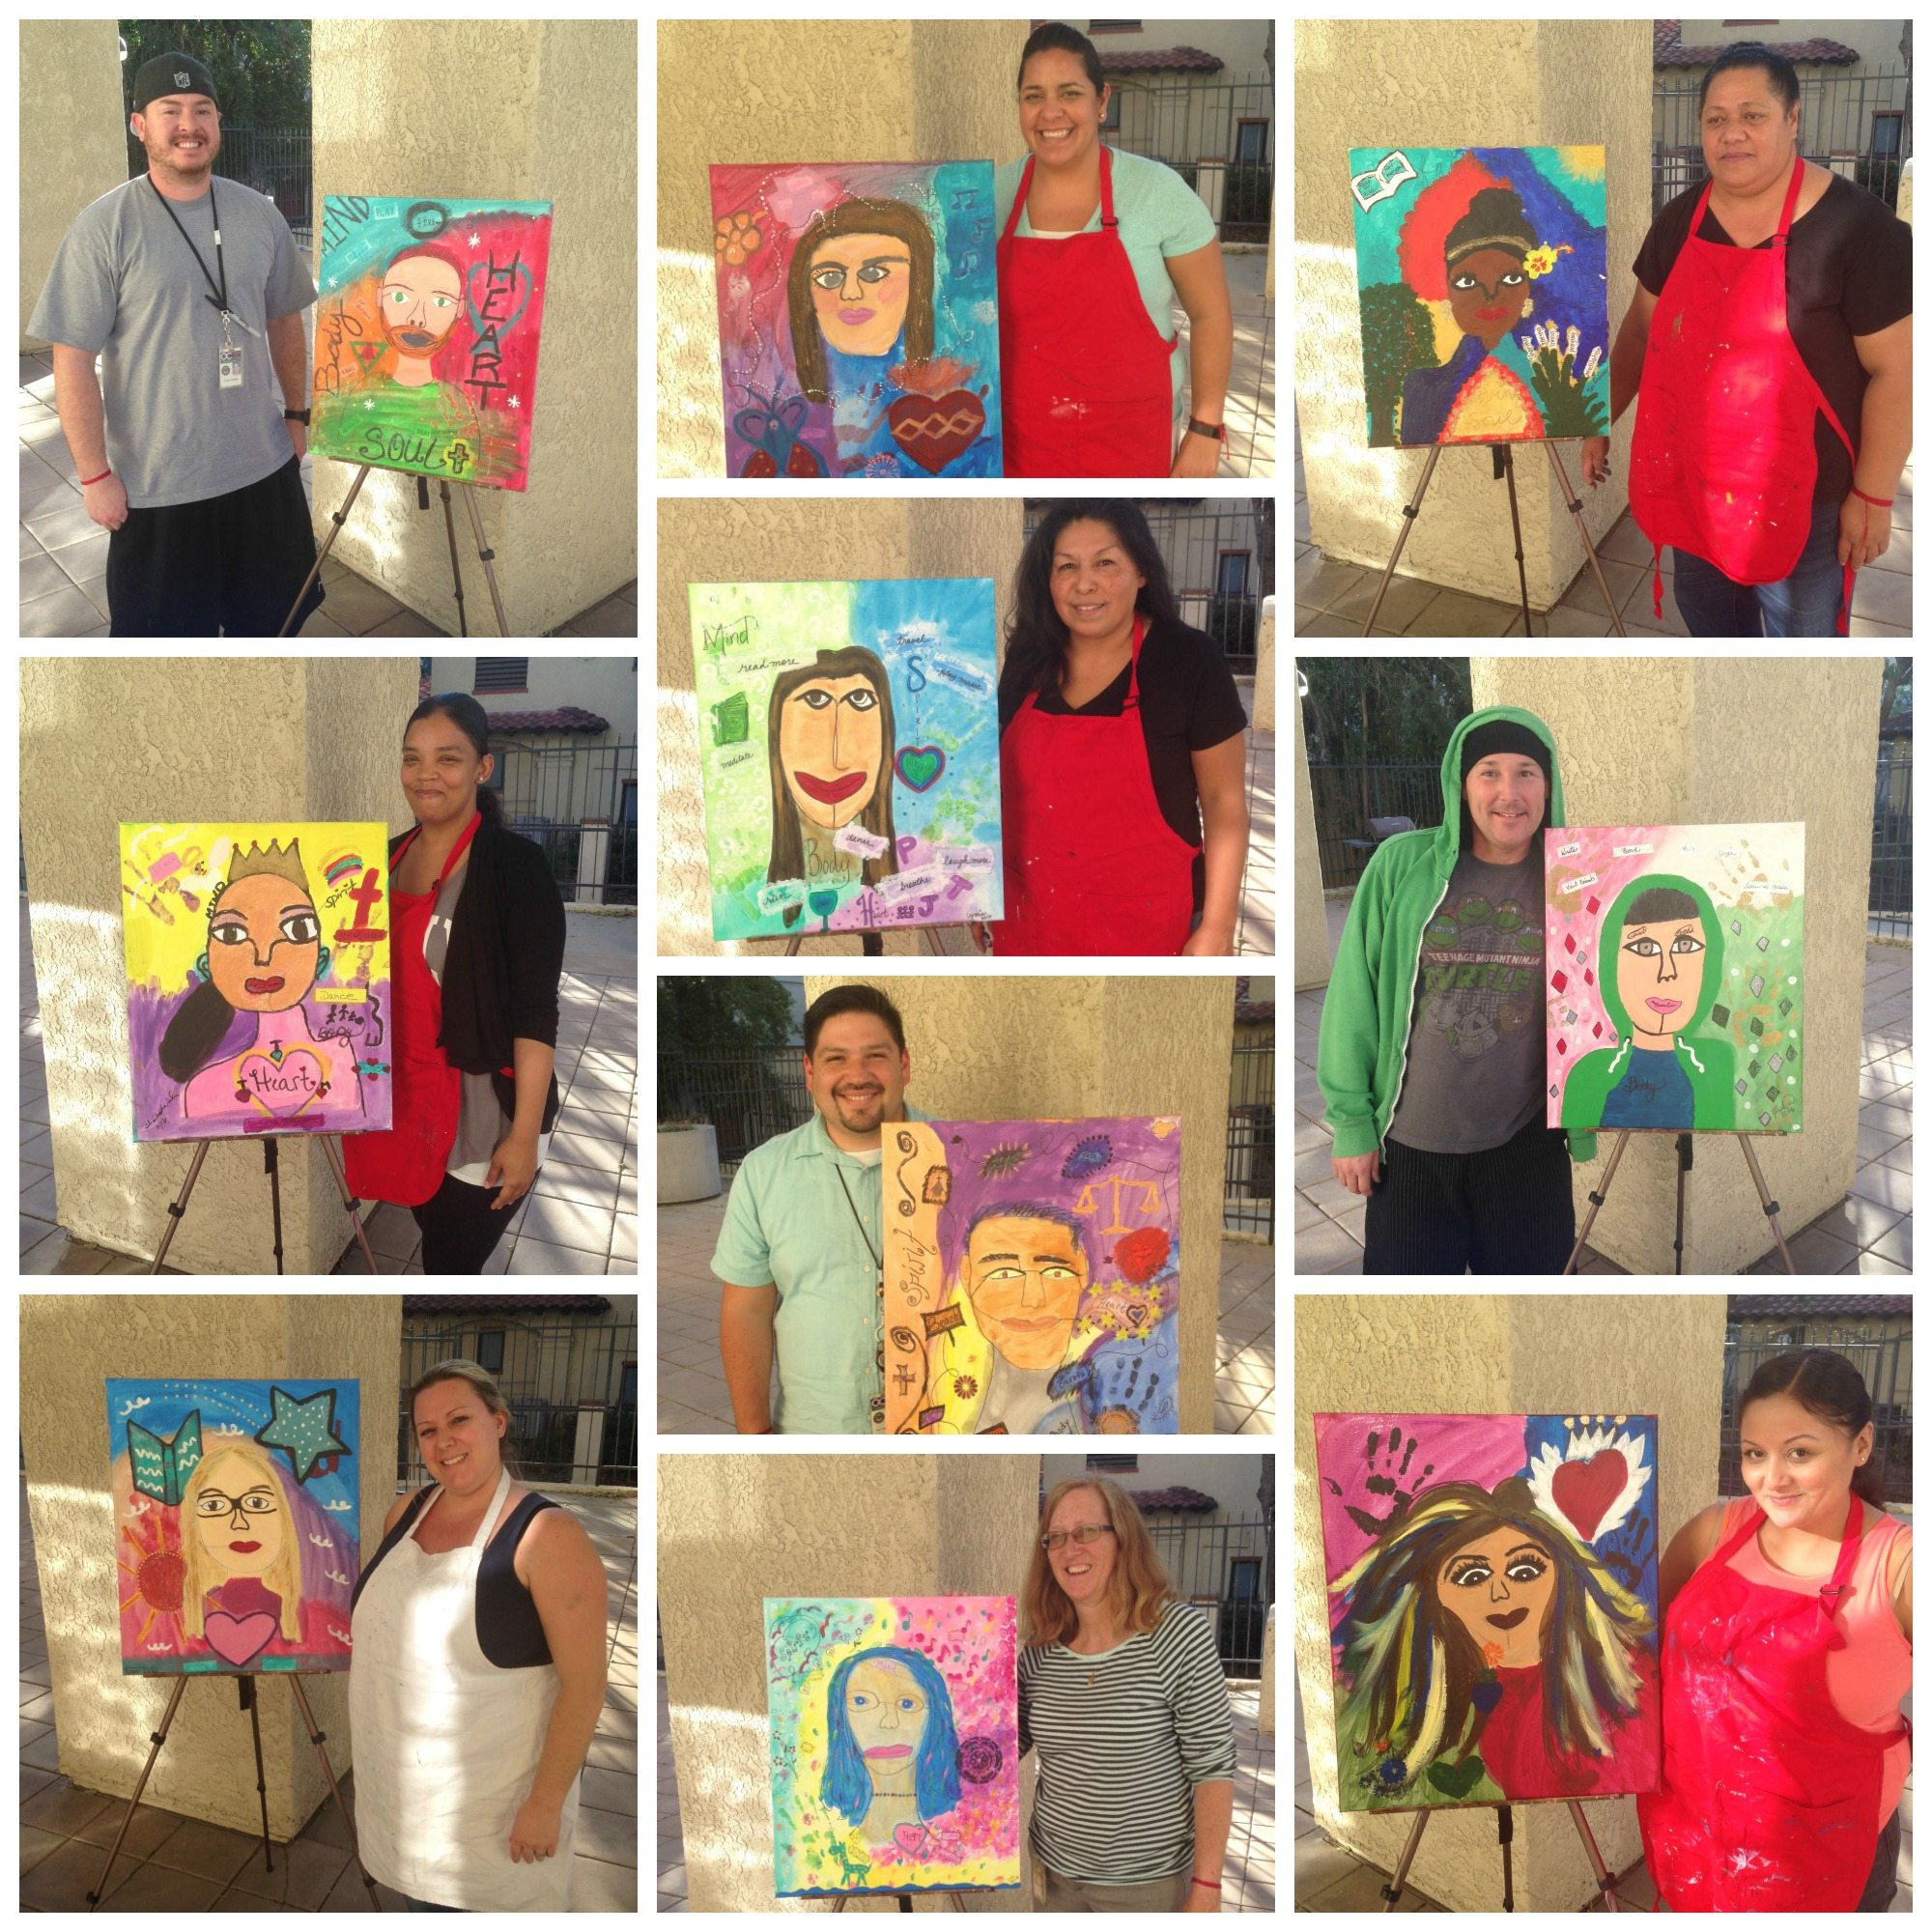 Healing the Healer-Orangewood Children and Family Center on 2-9-16-People&Muses Collage